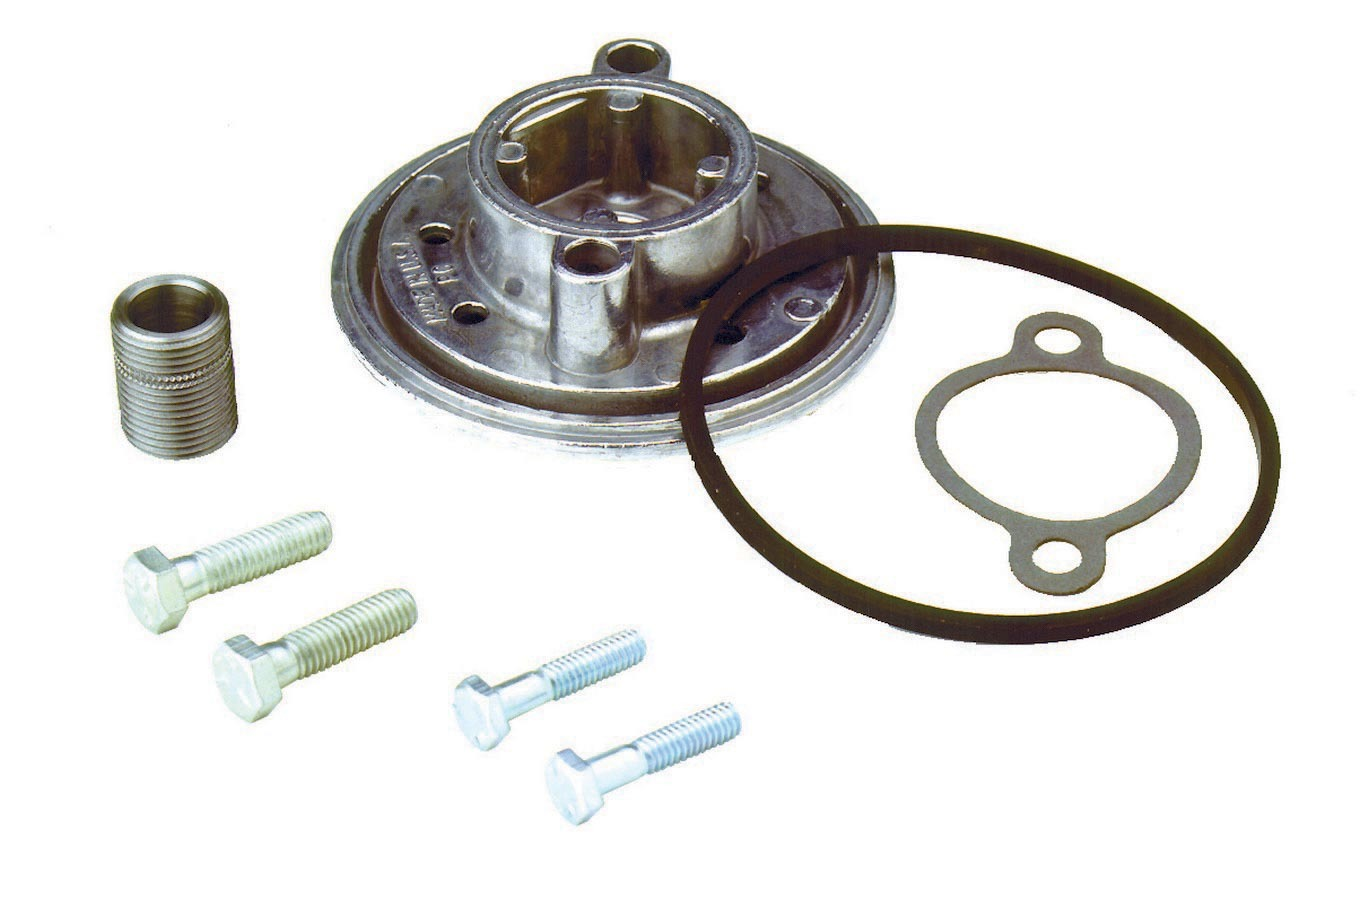 Perma Cool 1134 Oil Filter Adapter, Canister to Spin On Filter, 13/16-16 in Center Thread, 1/4 in Bolts, Aluminum, Natural, Small Block Chevy, Each